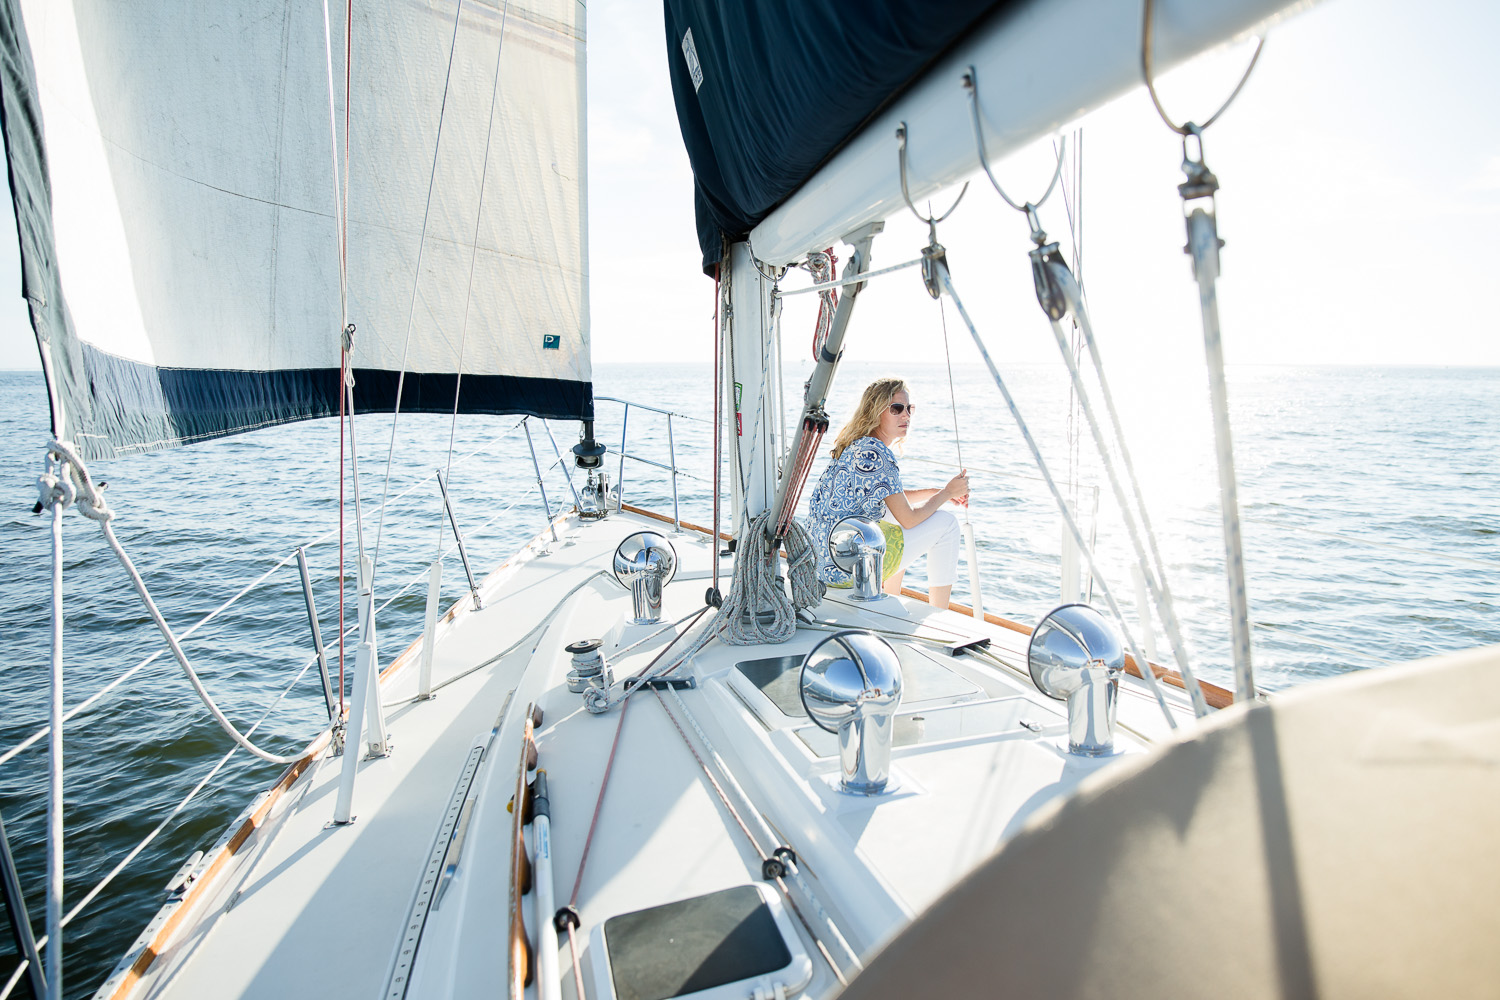 Woman on sailboat in the Chesapeake Bay